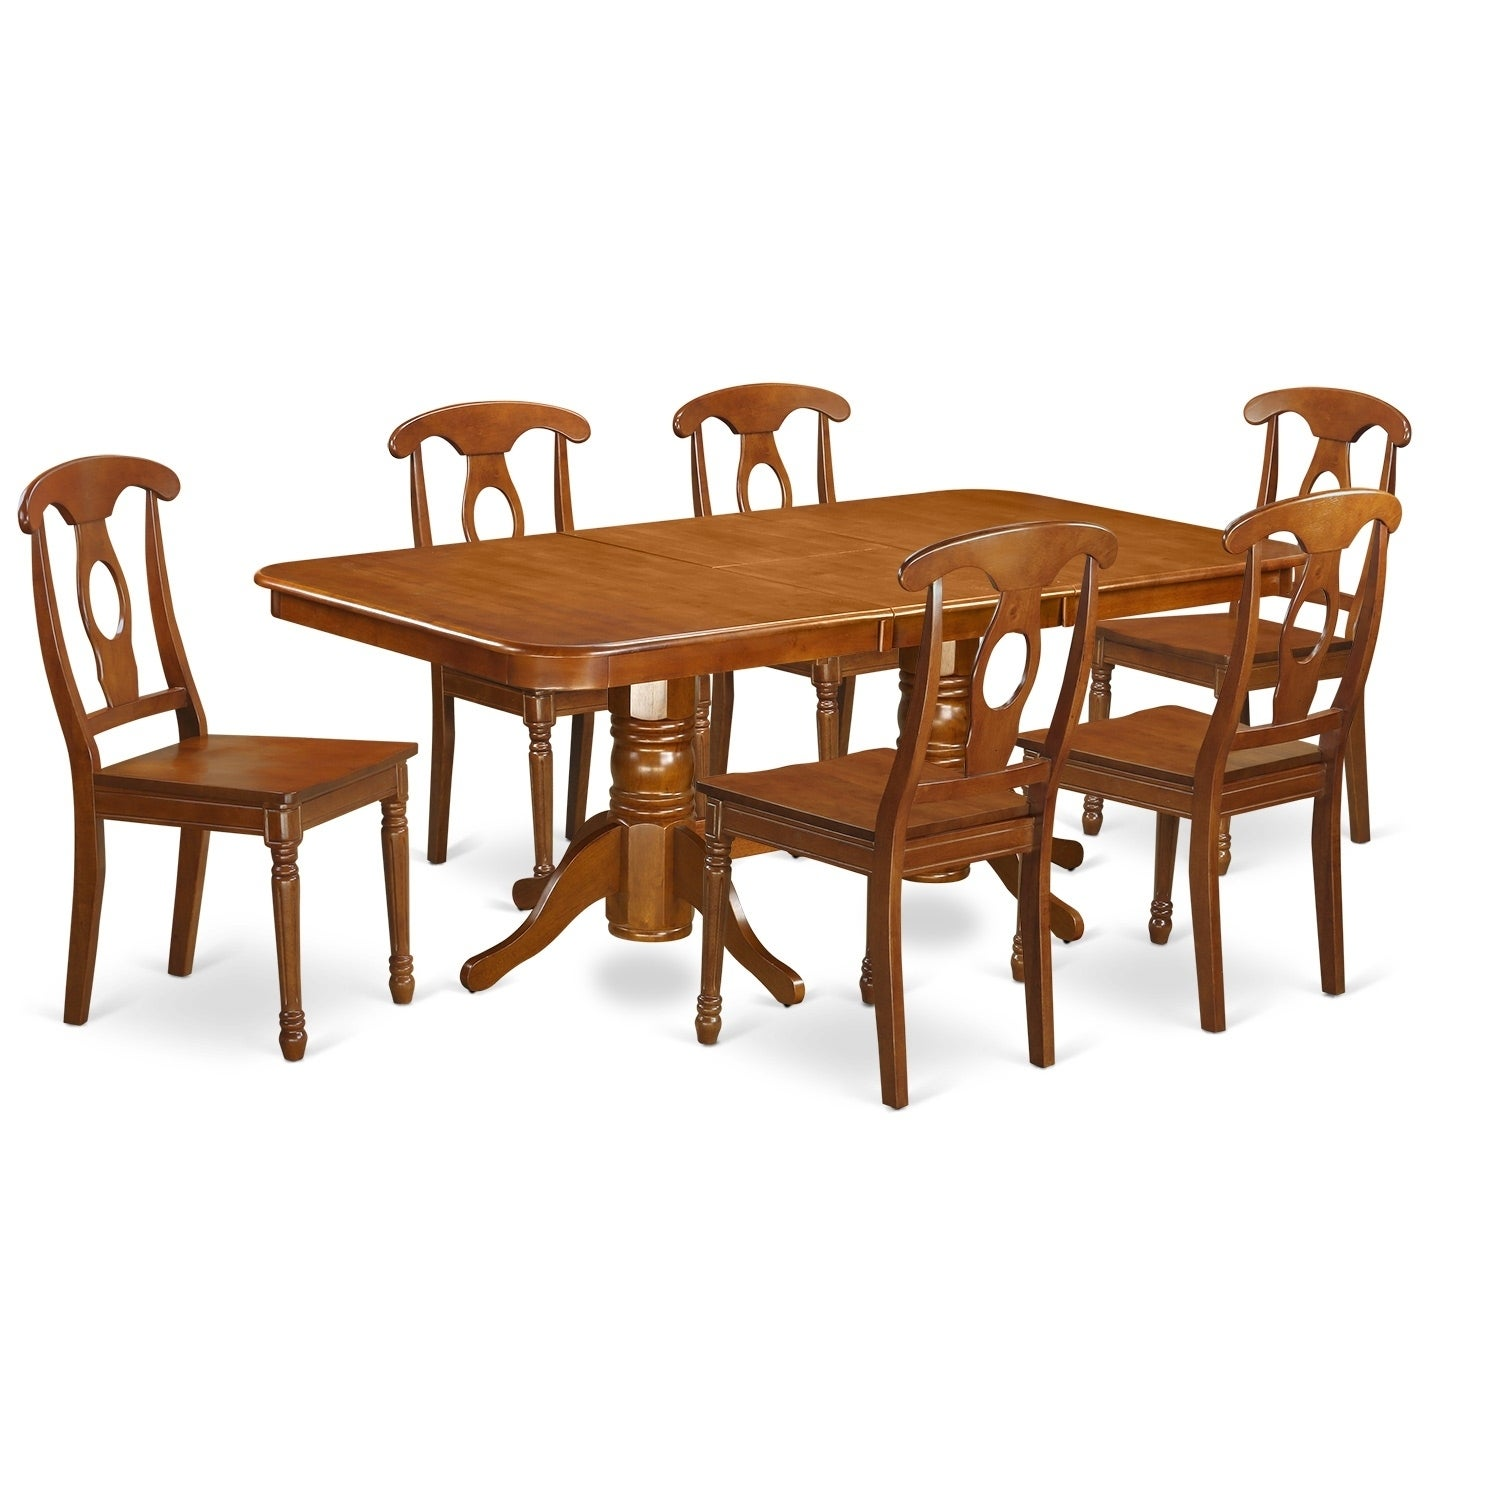 52 Kitchen Tables And Chairs Sets 7 Pc Dining Room: NANA7-SBR 7 Pc Dining Room Set For 6-rectangular Table And